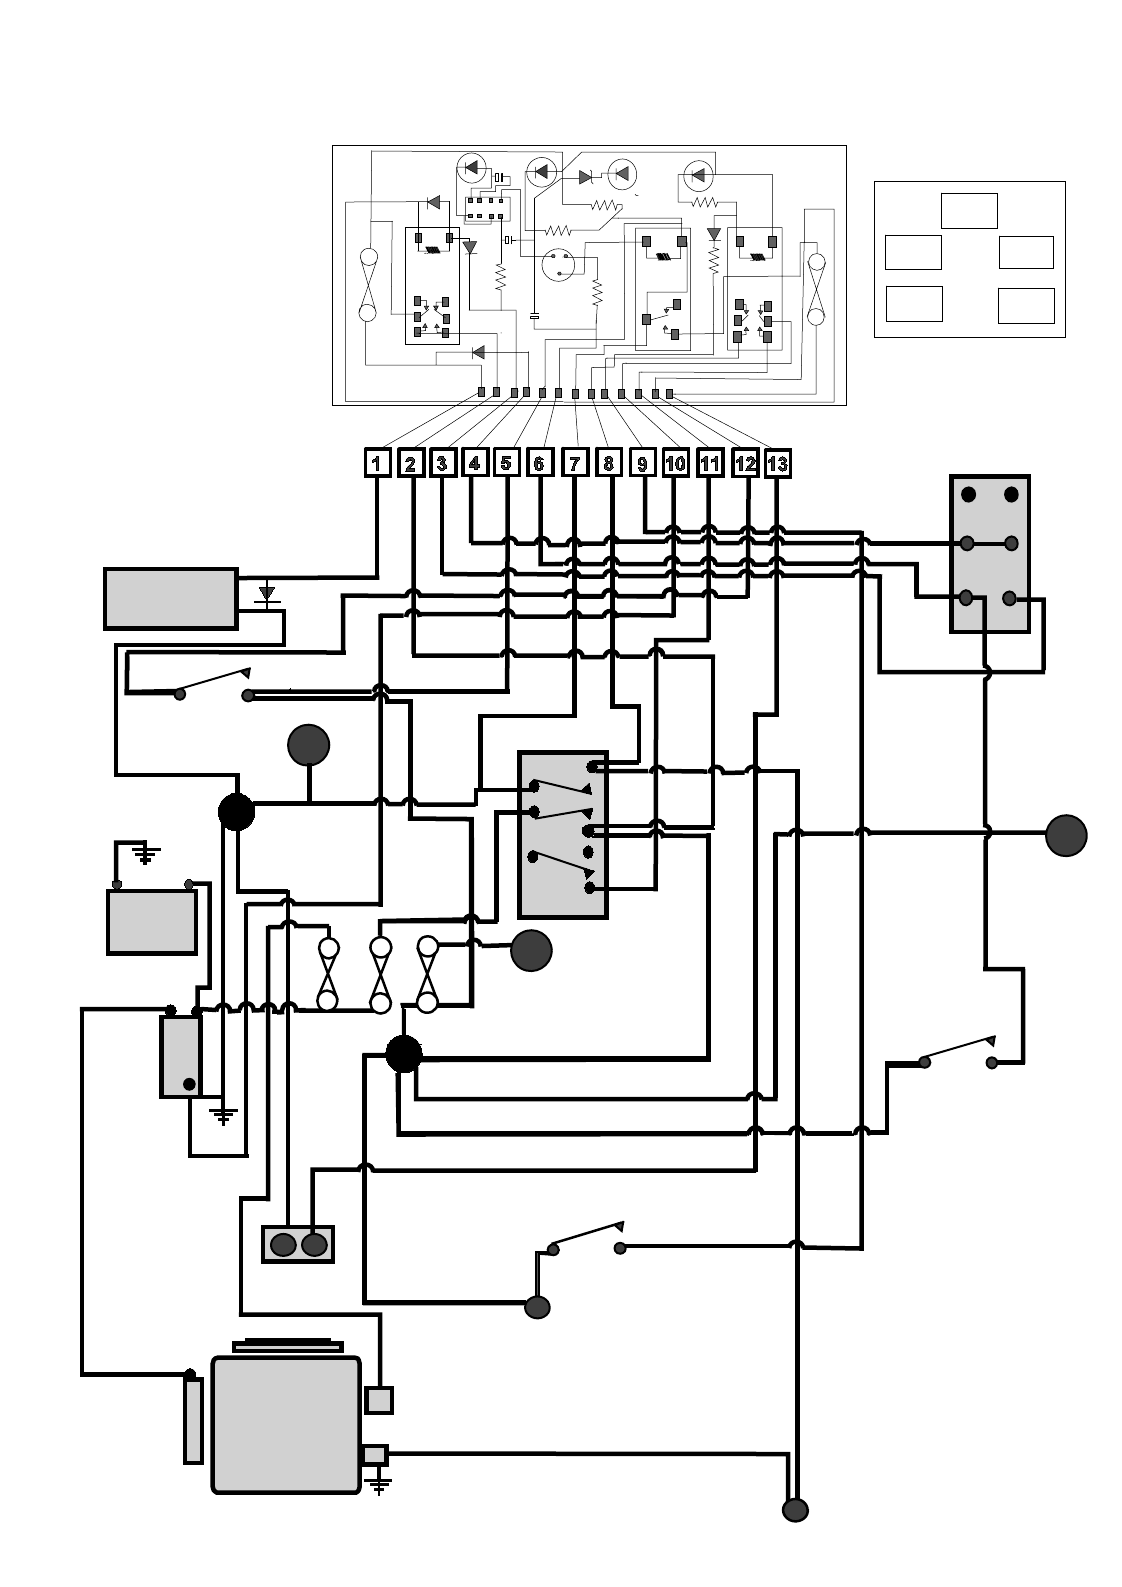 66e0580b f452 4a33 8a85 ac9ee337c147 bg17 page 23 of countax lawn mower garden tractor user guide countax wiring diagram at pacquiaovsvargaslive.co